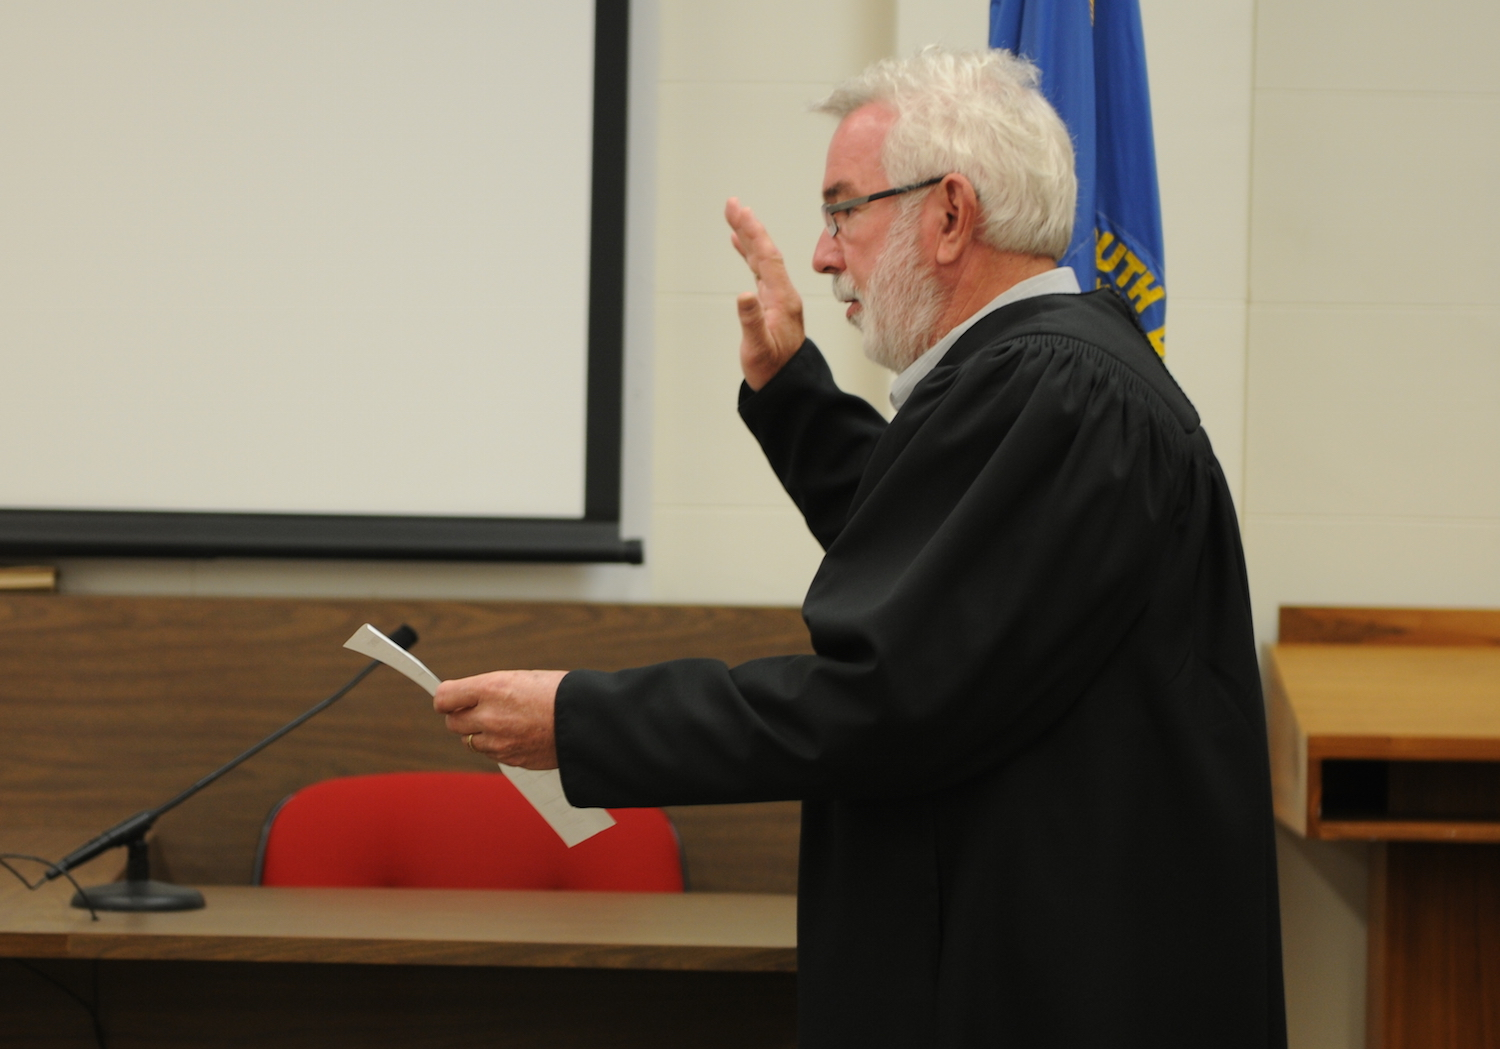 Judge in South Dakota sanctioned in Indian Child Welfare Act case